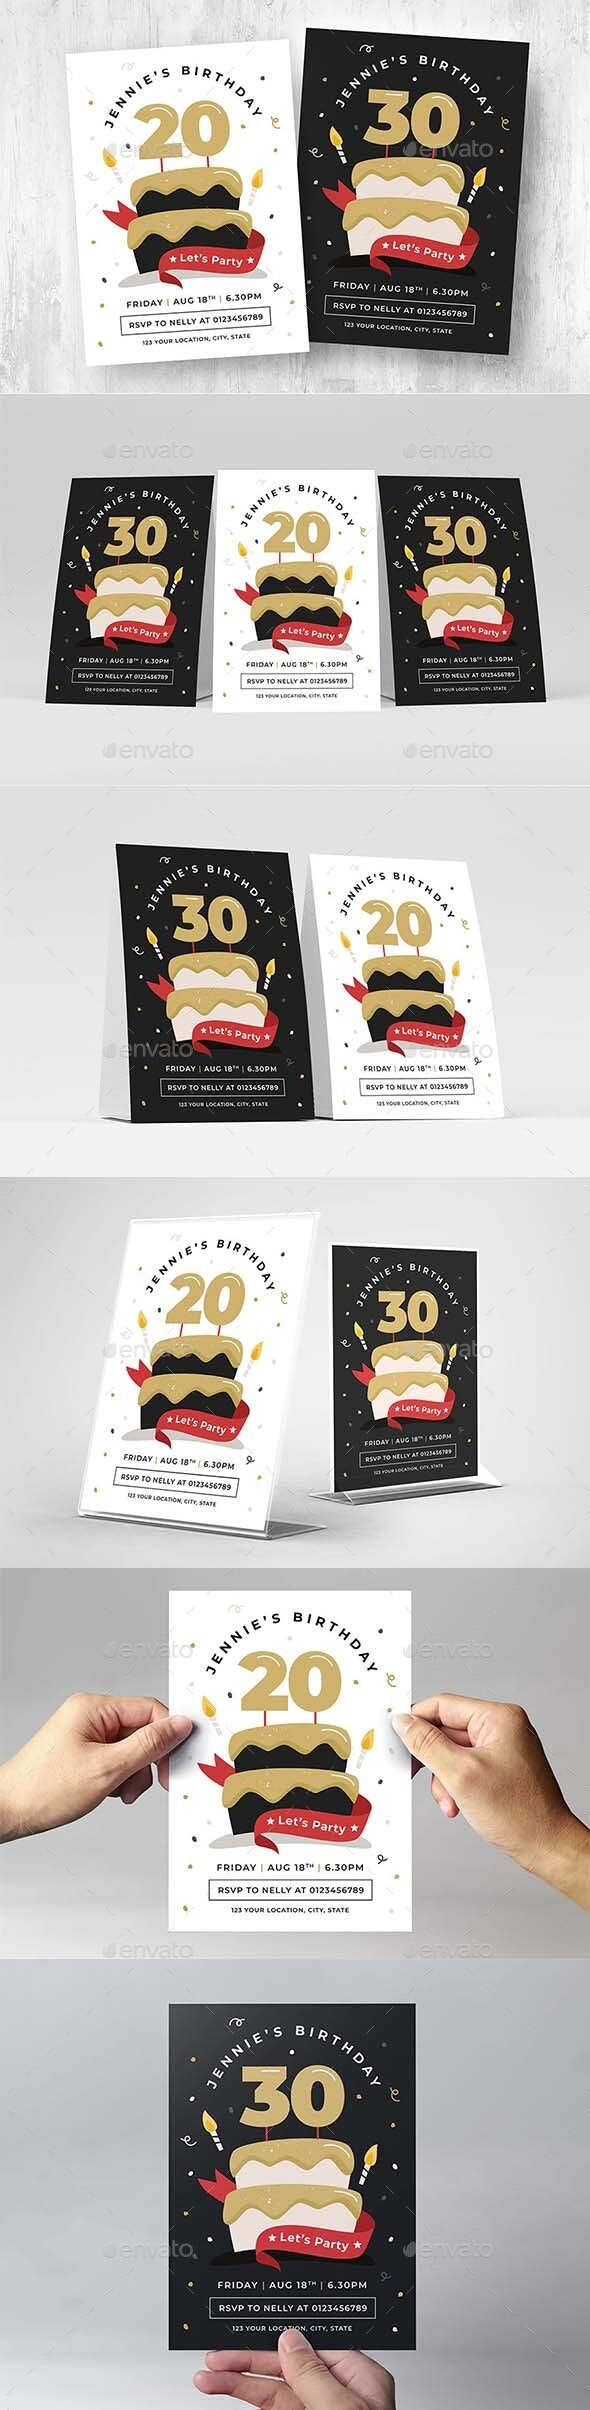 Birthday Party Invitation with Cake - Flyers Print Templates